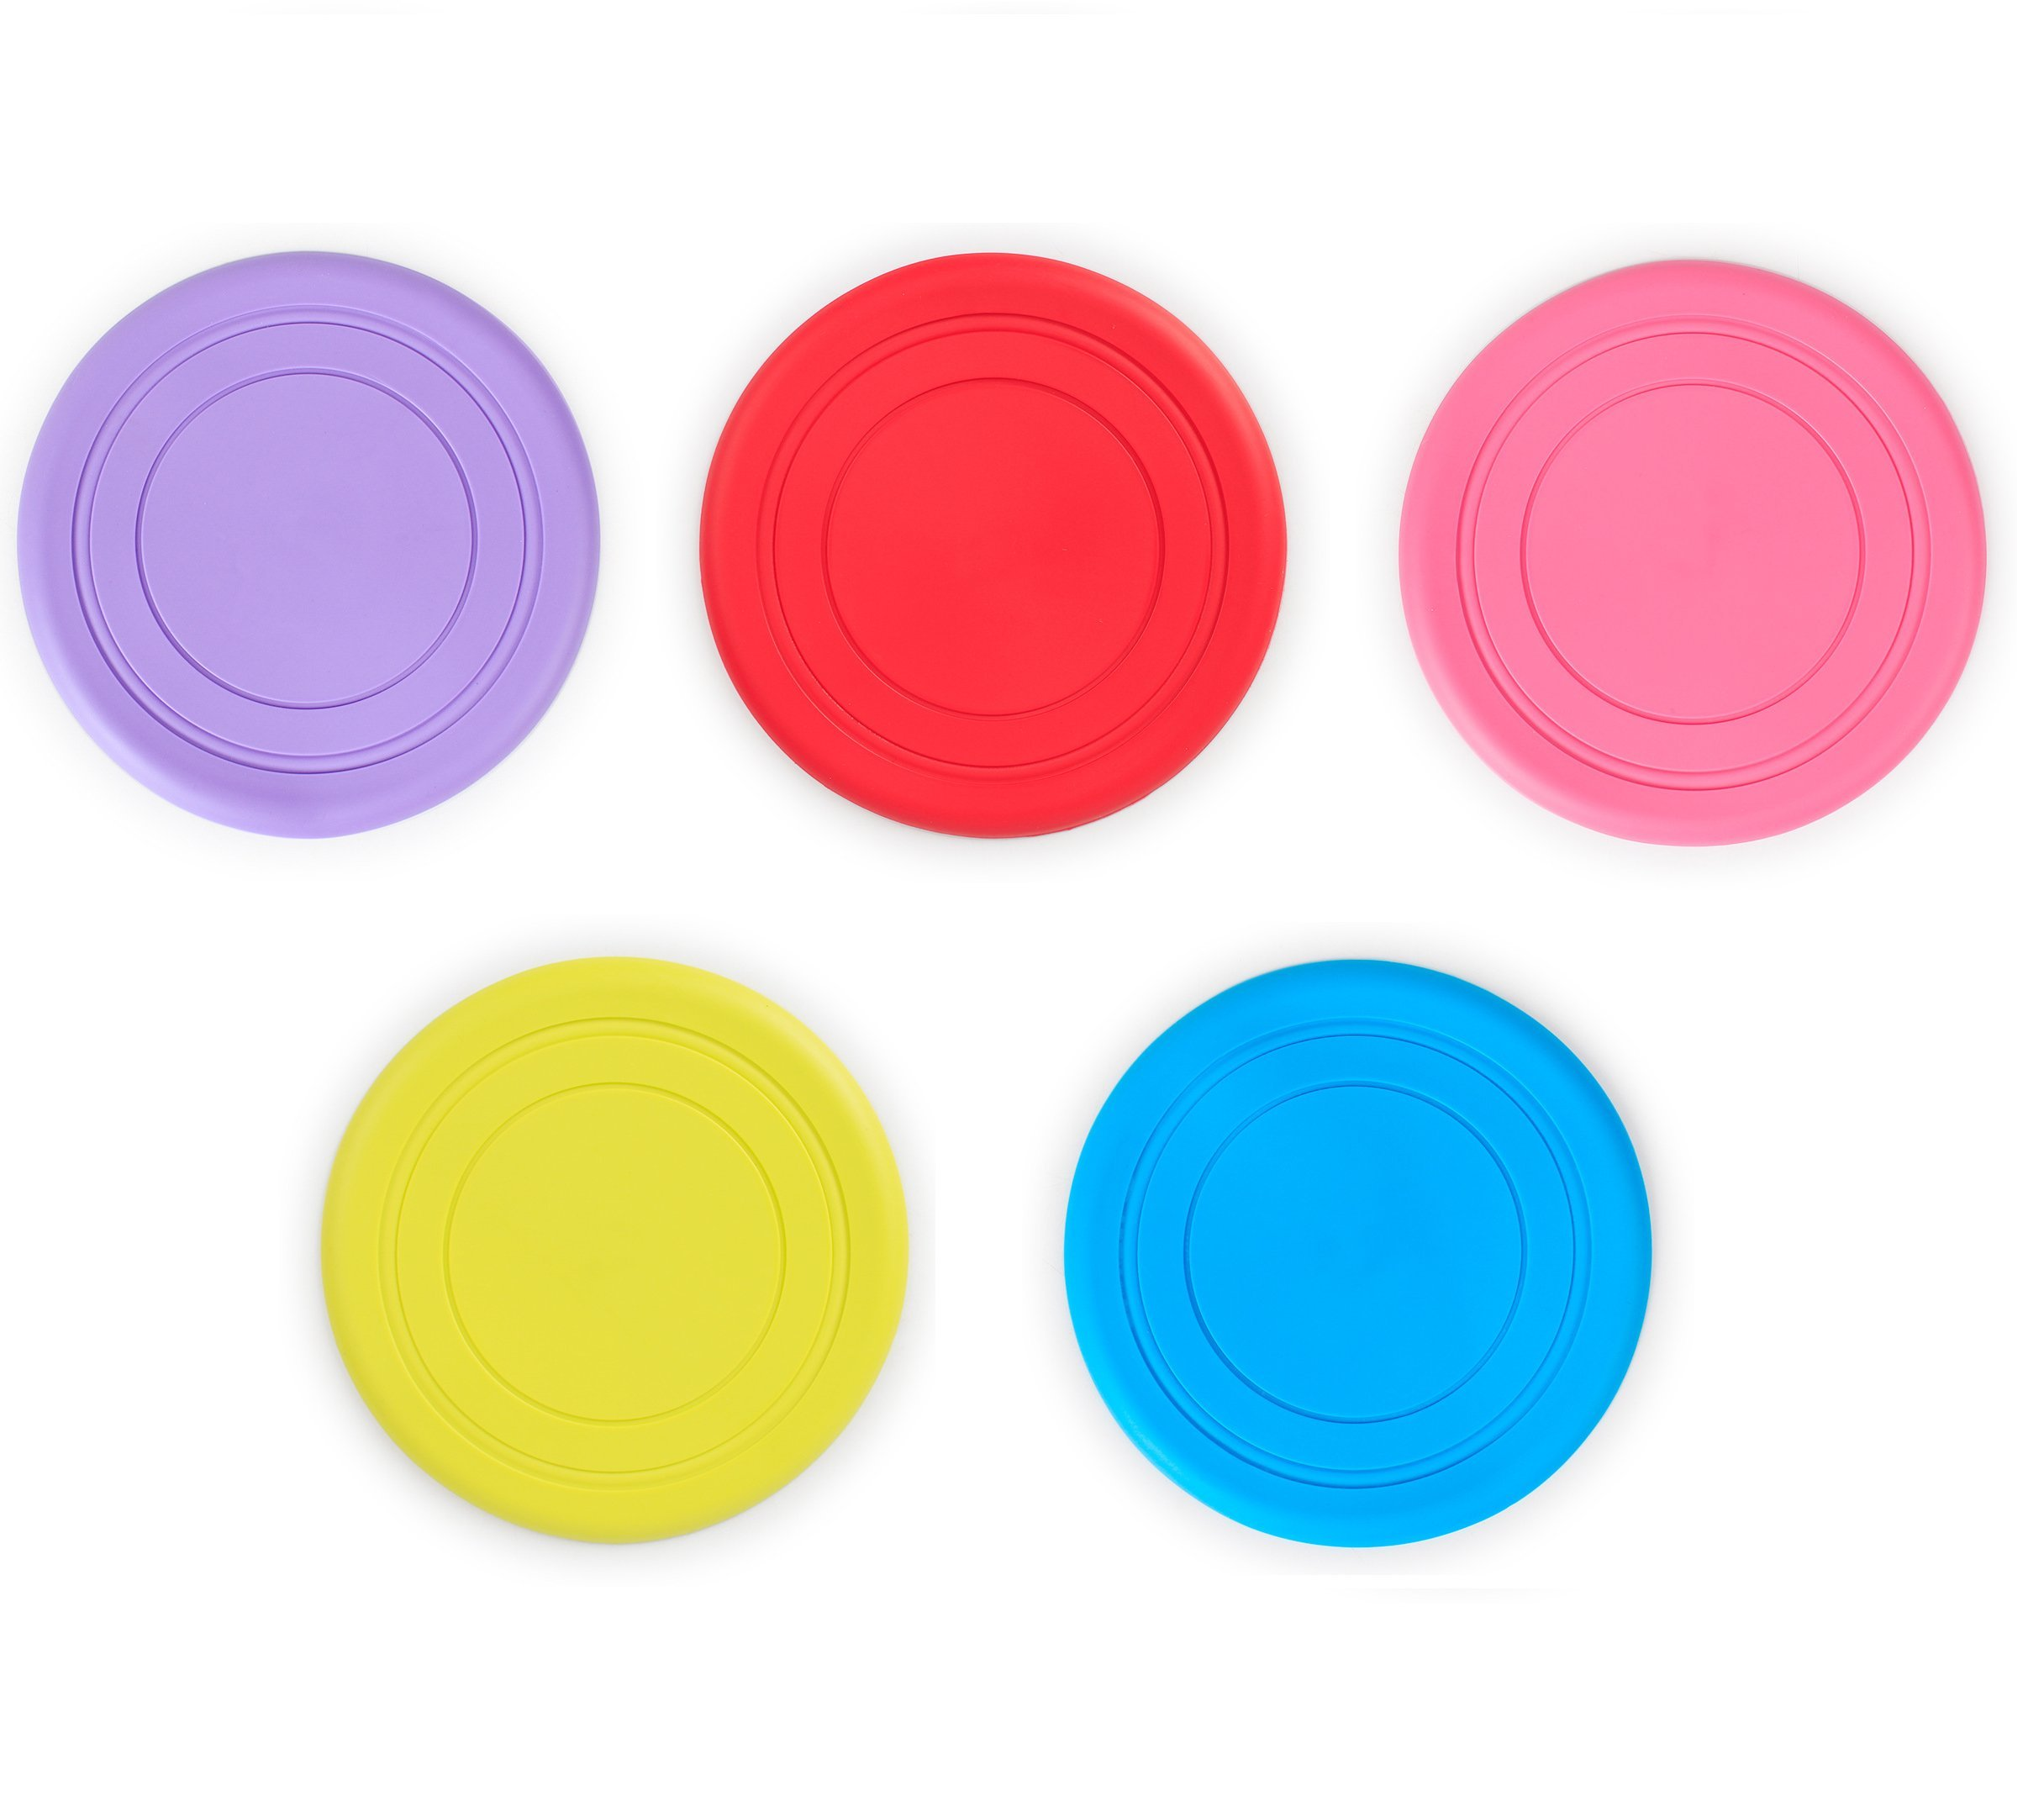 Stock Show 5Pcs 18cm/7 inch Pet Silicone Play Frisbee Flying Disc Bite Resistance Fetch Exercise Training Tools Outdoor Flyer Interactive Toys for Small Medium Dogs/Puppy, Random Color